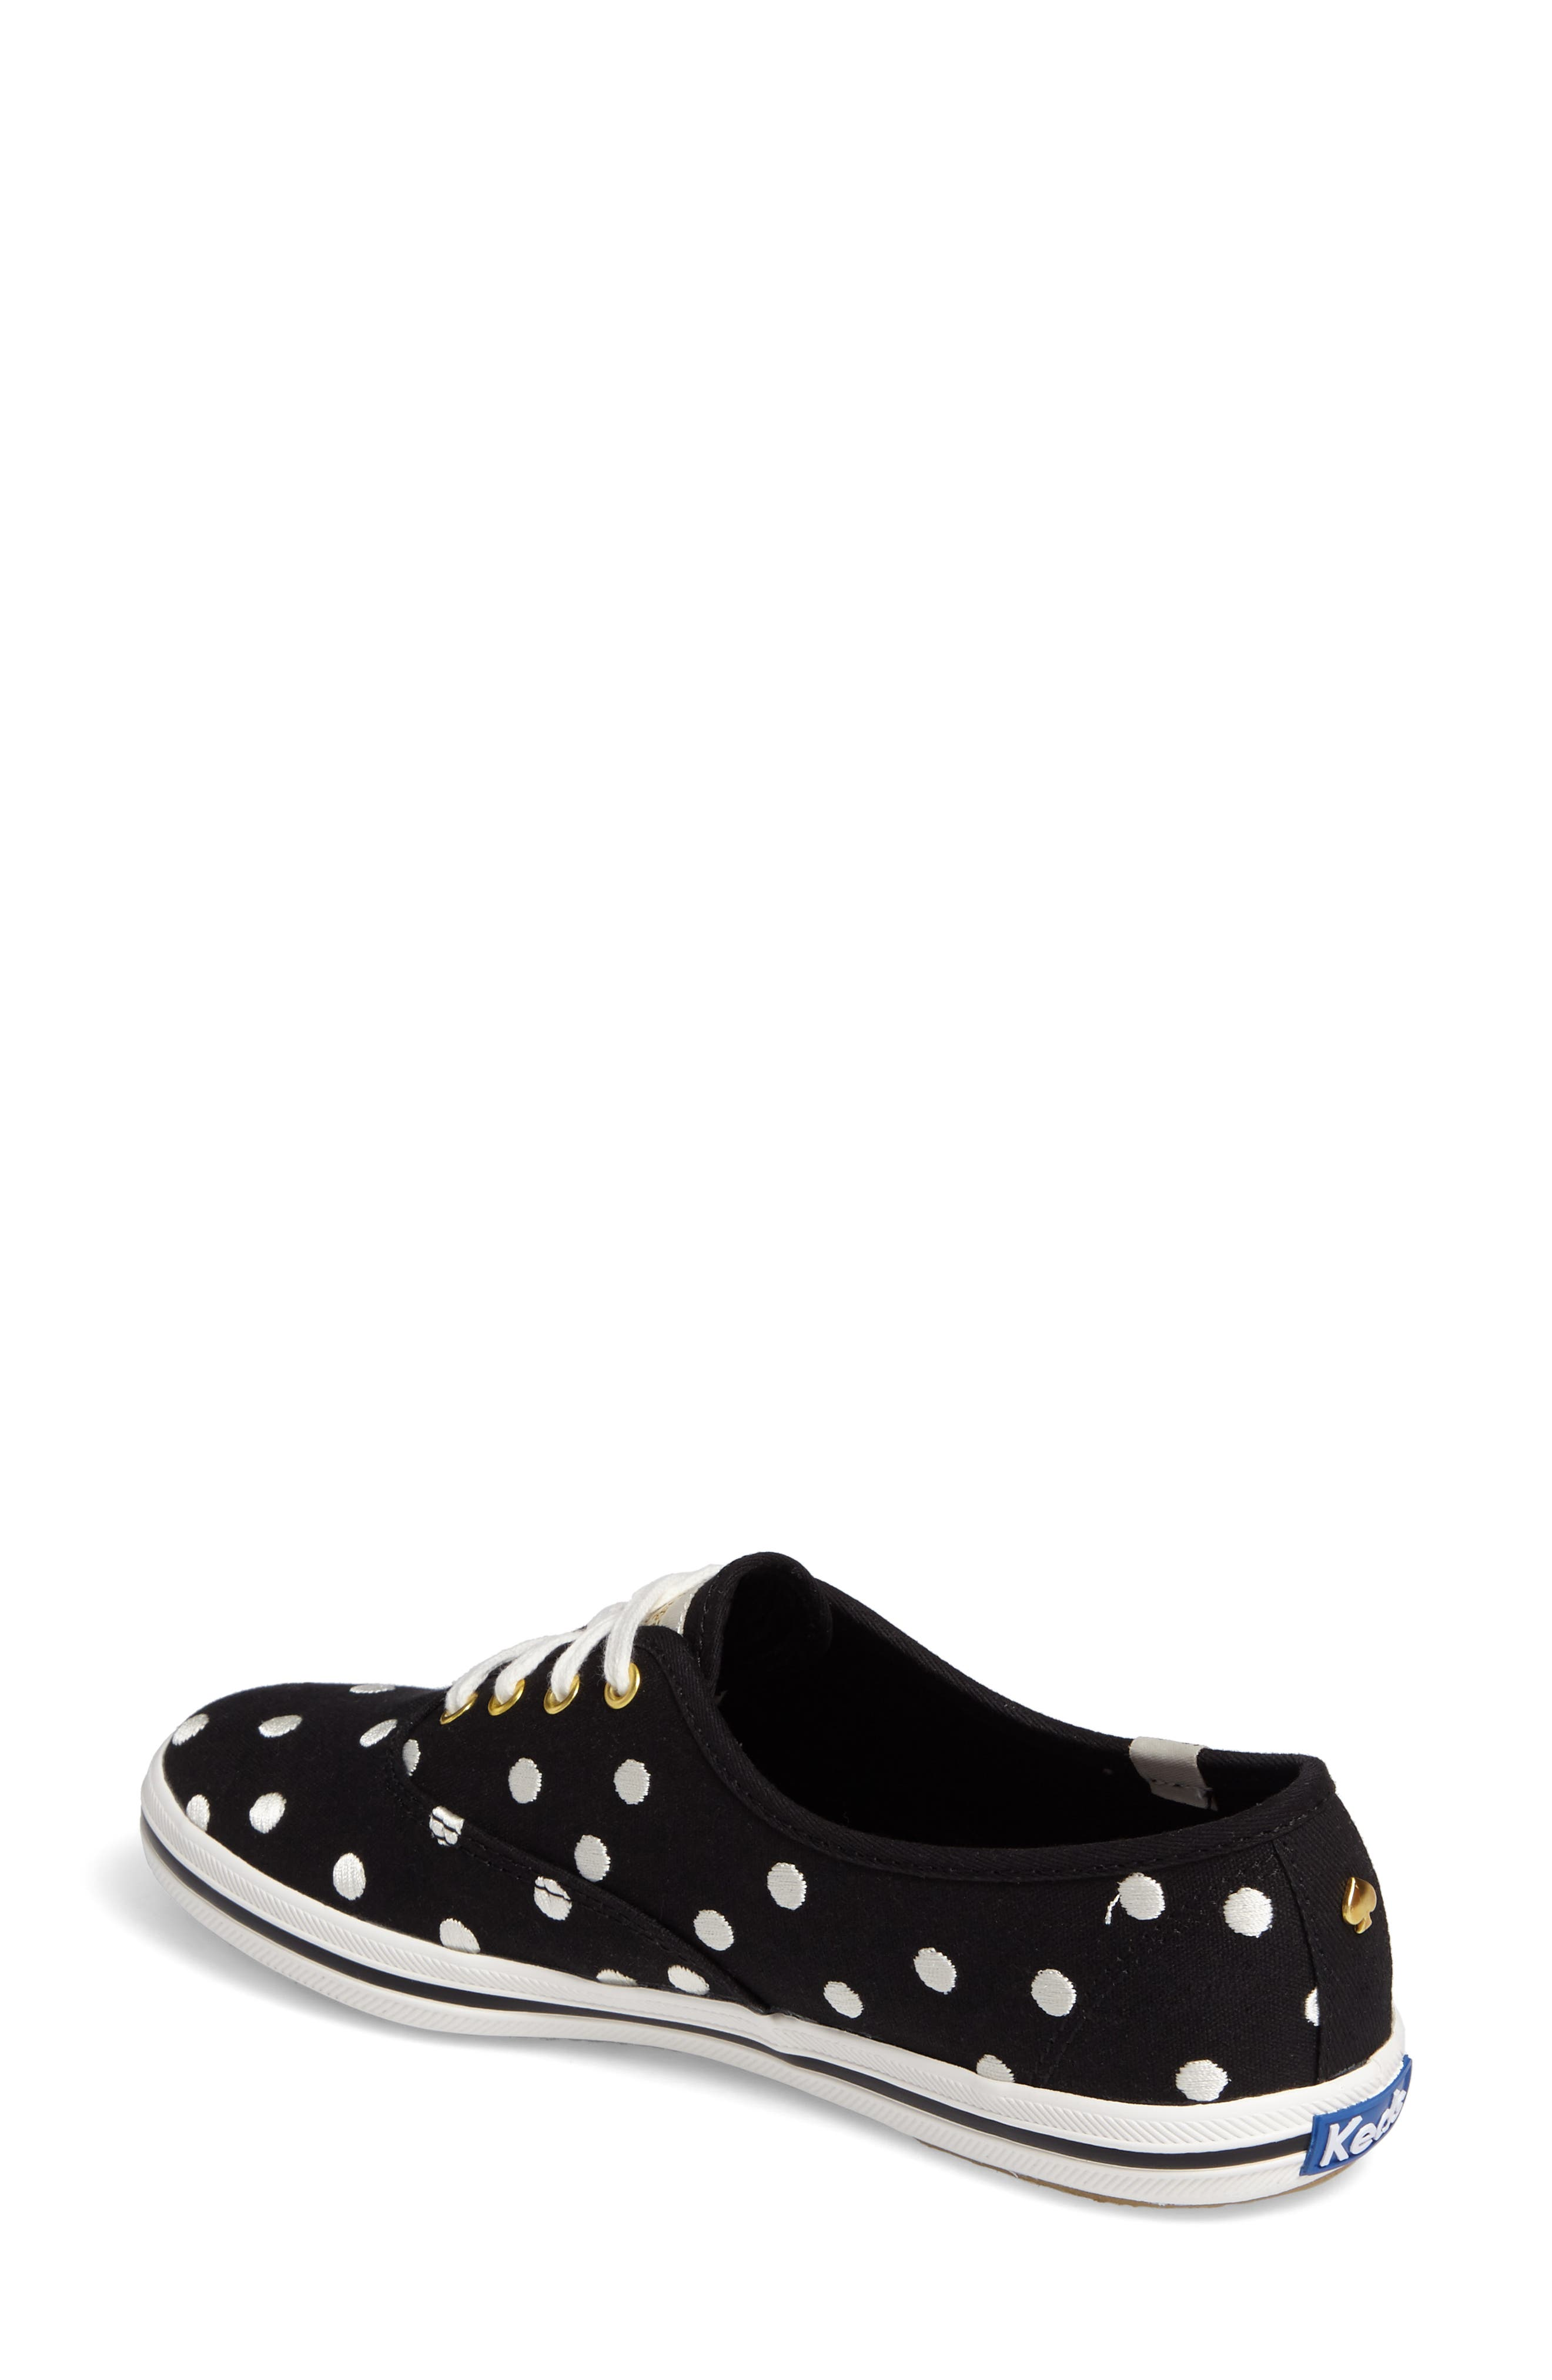 Keds<sup>®</sup> x kate spade new york champion sneaker,                             Alternate thumbnail 5, color,